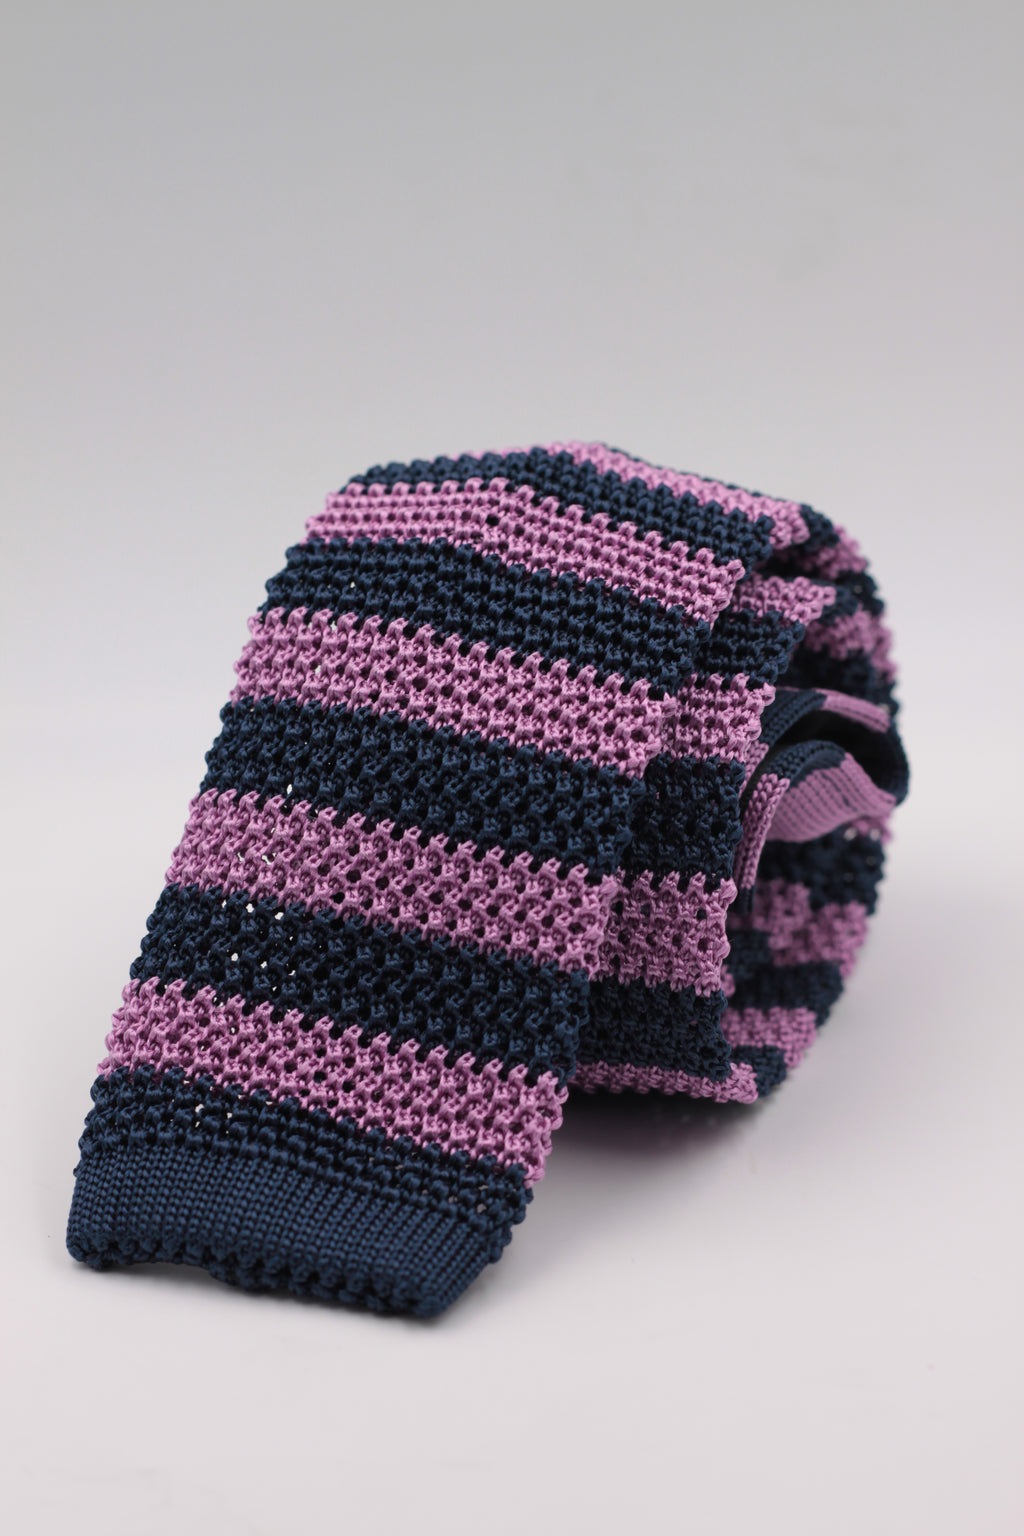 Cruciani & Bella 100% Knitted Silk Blue and Pink stripe tie Handmade in Italy 6 cm x 147 cm